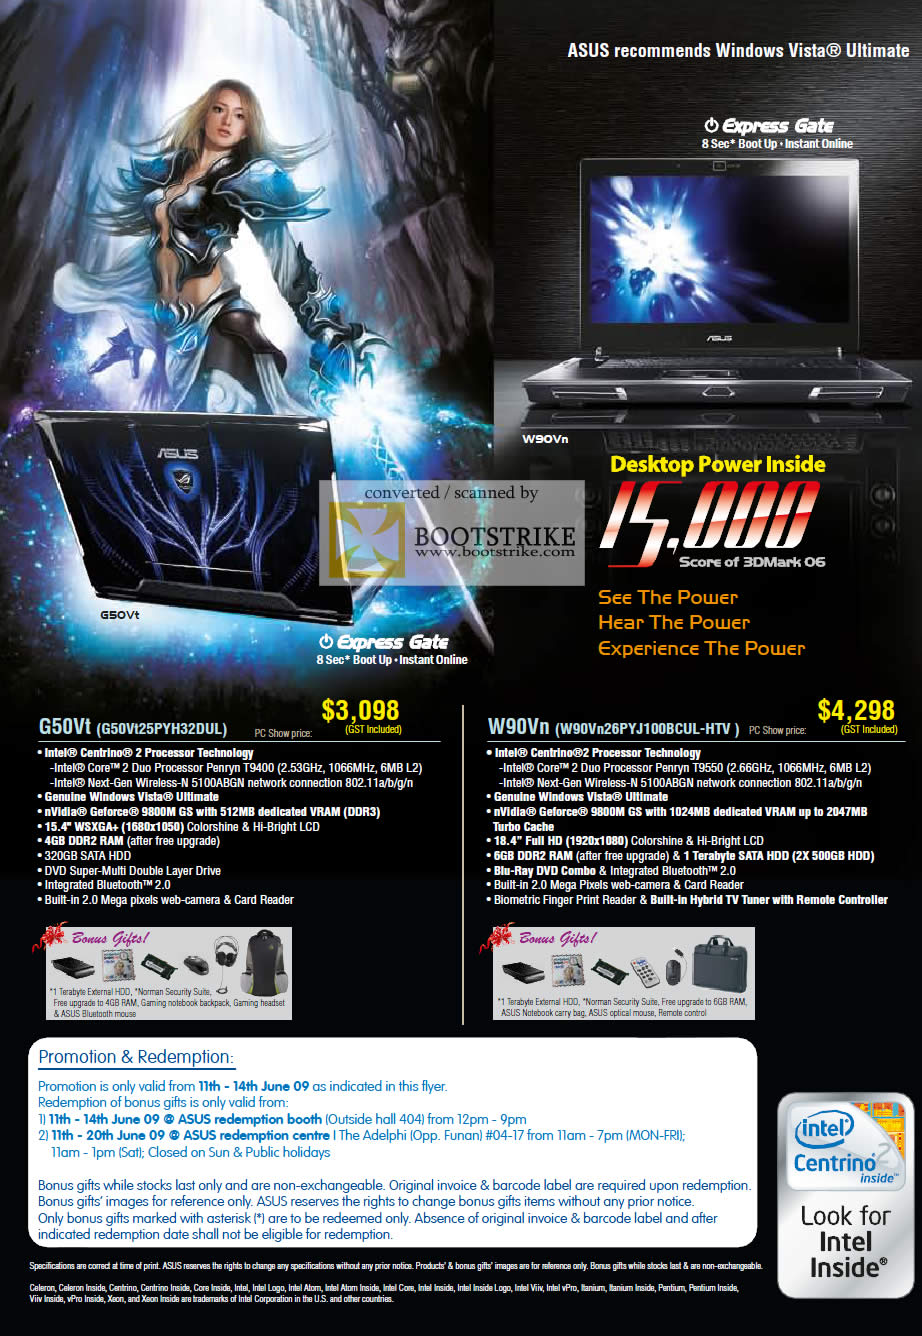 asus w90vn g50vt gaming notebook pc show 2009 price list